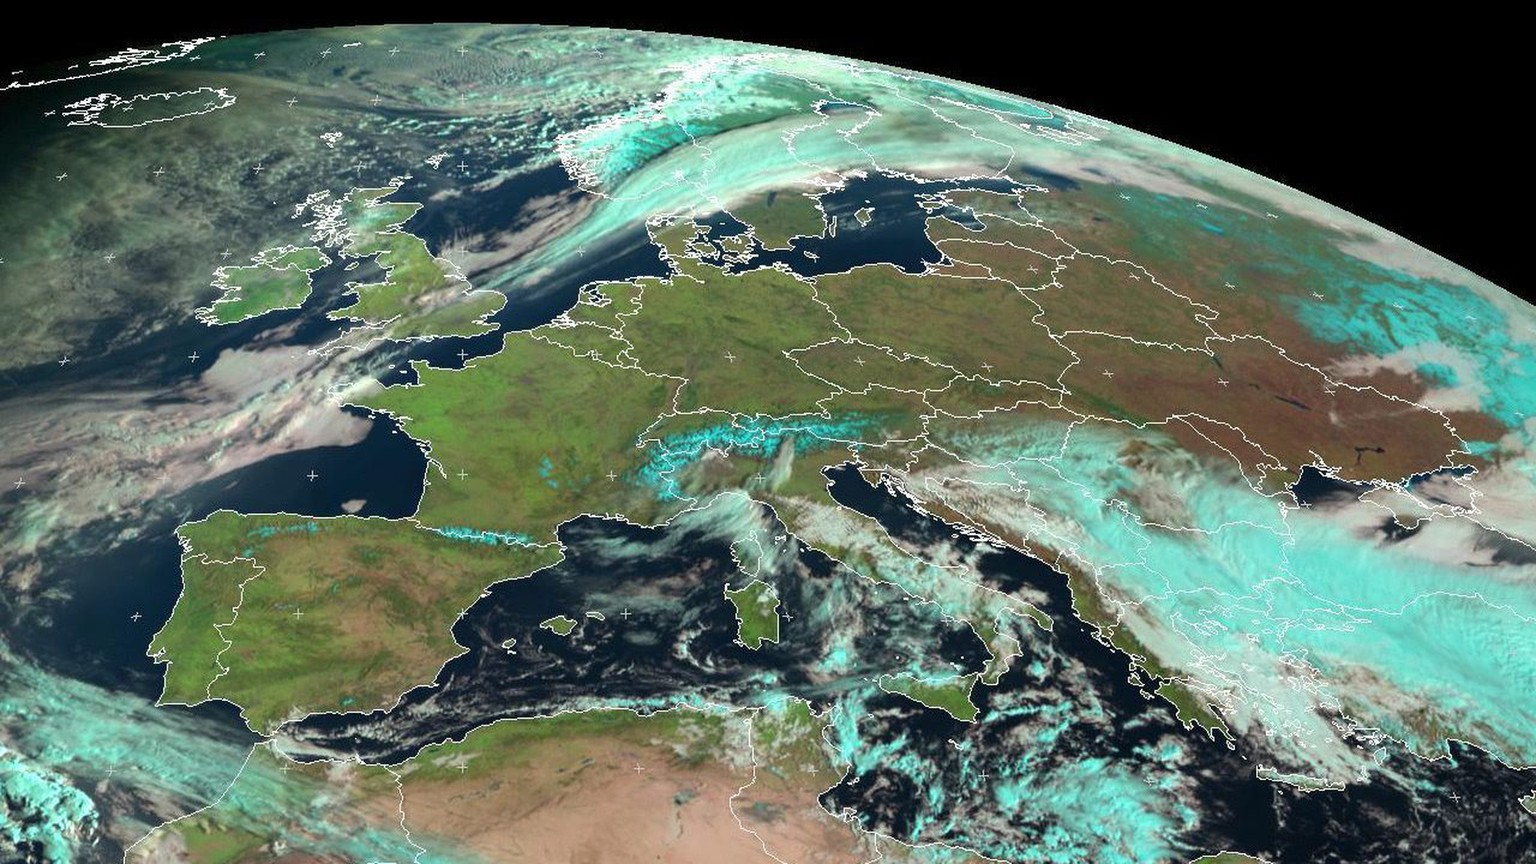 epa04119012 A handout satellite picture provided by the European Organisation for the Exploitation of Meteorological Satellites (EUMETSAT) shows clear skies over Europe, 10 March 2014. The image, taken by Meteosat-10 geostationary satellite at 08:00 (UTC), shows almost no clouds over Portugal, Spain, France, Belgium, the Netherlands, Luxembourg, Germany, Poland, Czech Republic, Lithuania, Latvia, Belarus, Ukraine, and Slovakia.  EPA/EUMETSAT / HANDOUT  HANDOUT EDITORIAL USE ONLY/NO SALES